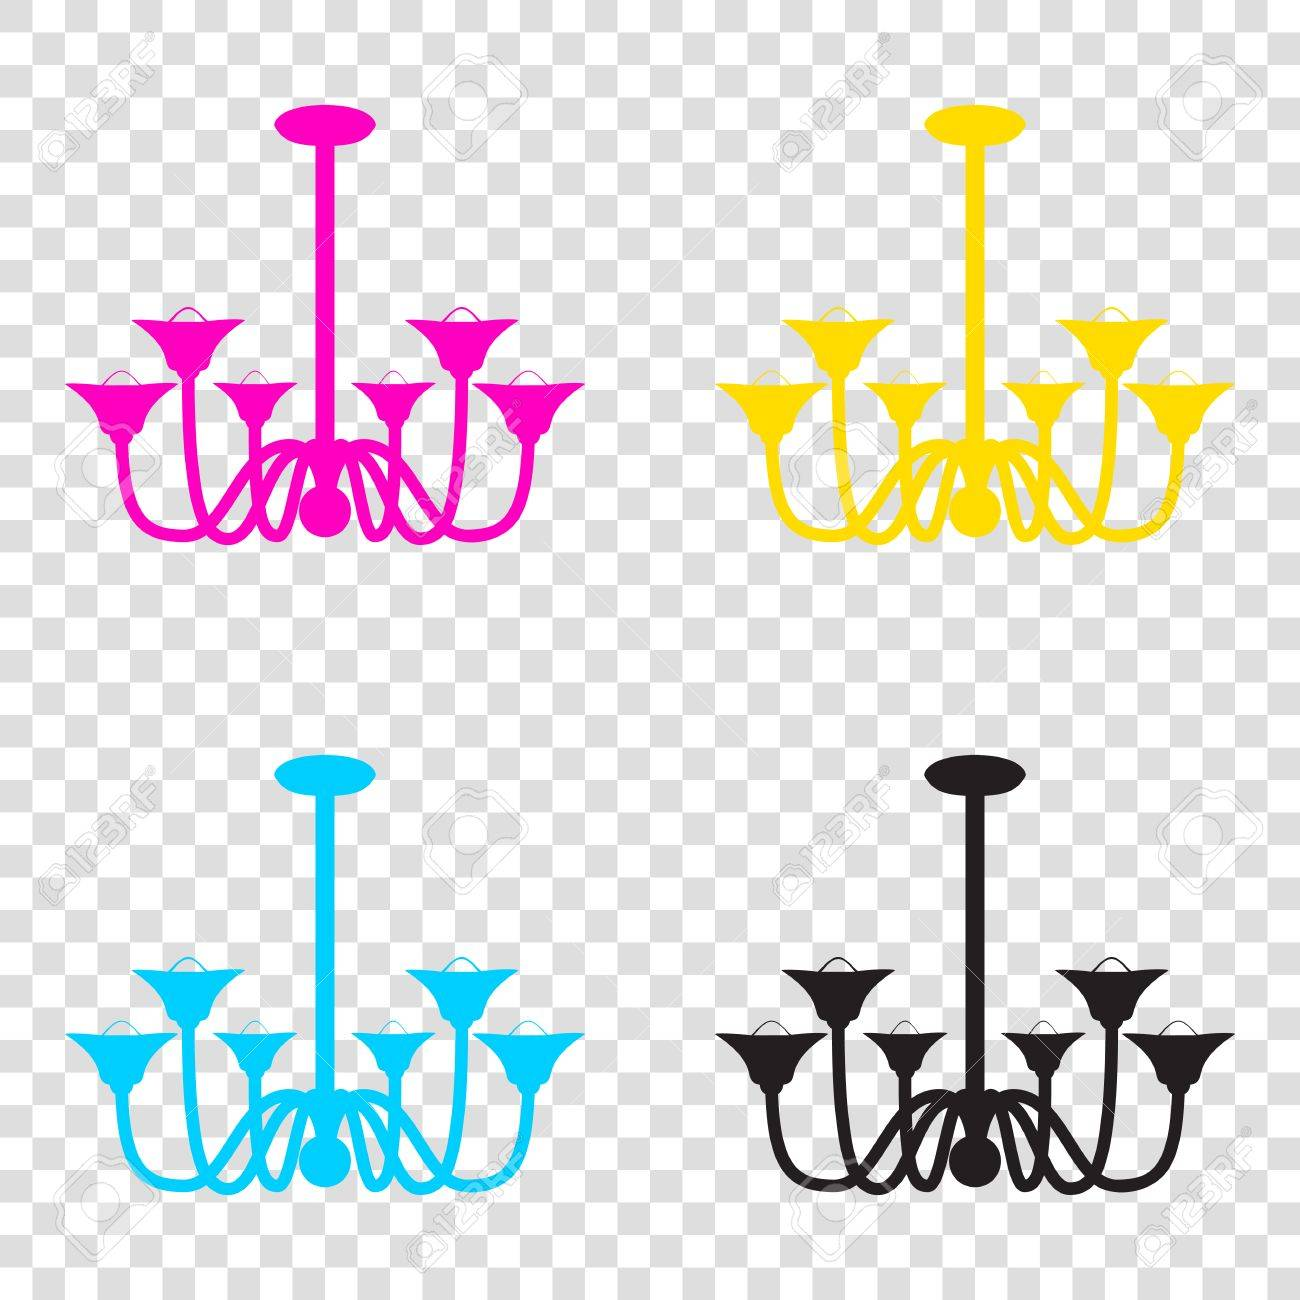 Chandelier simple sign  CMYK icons on transparent background